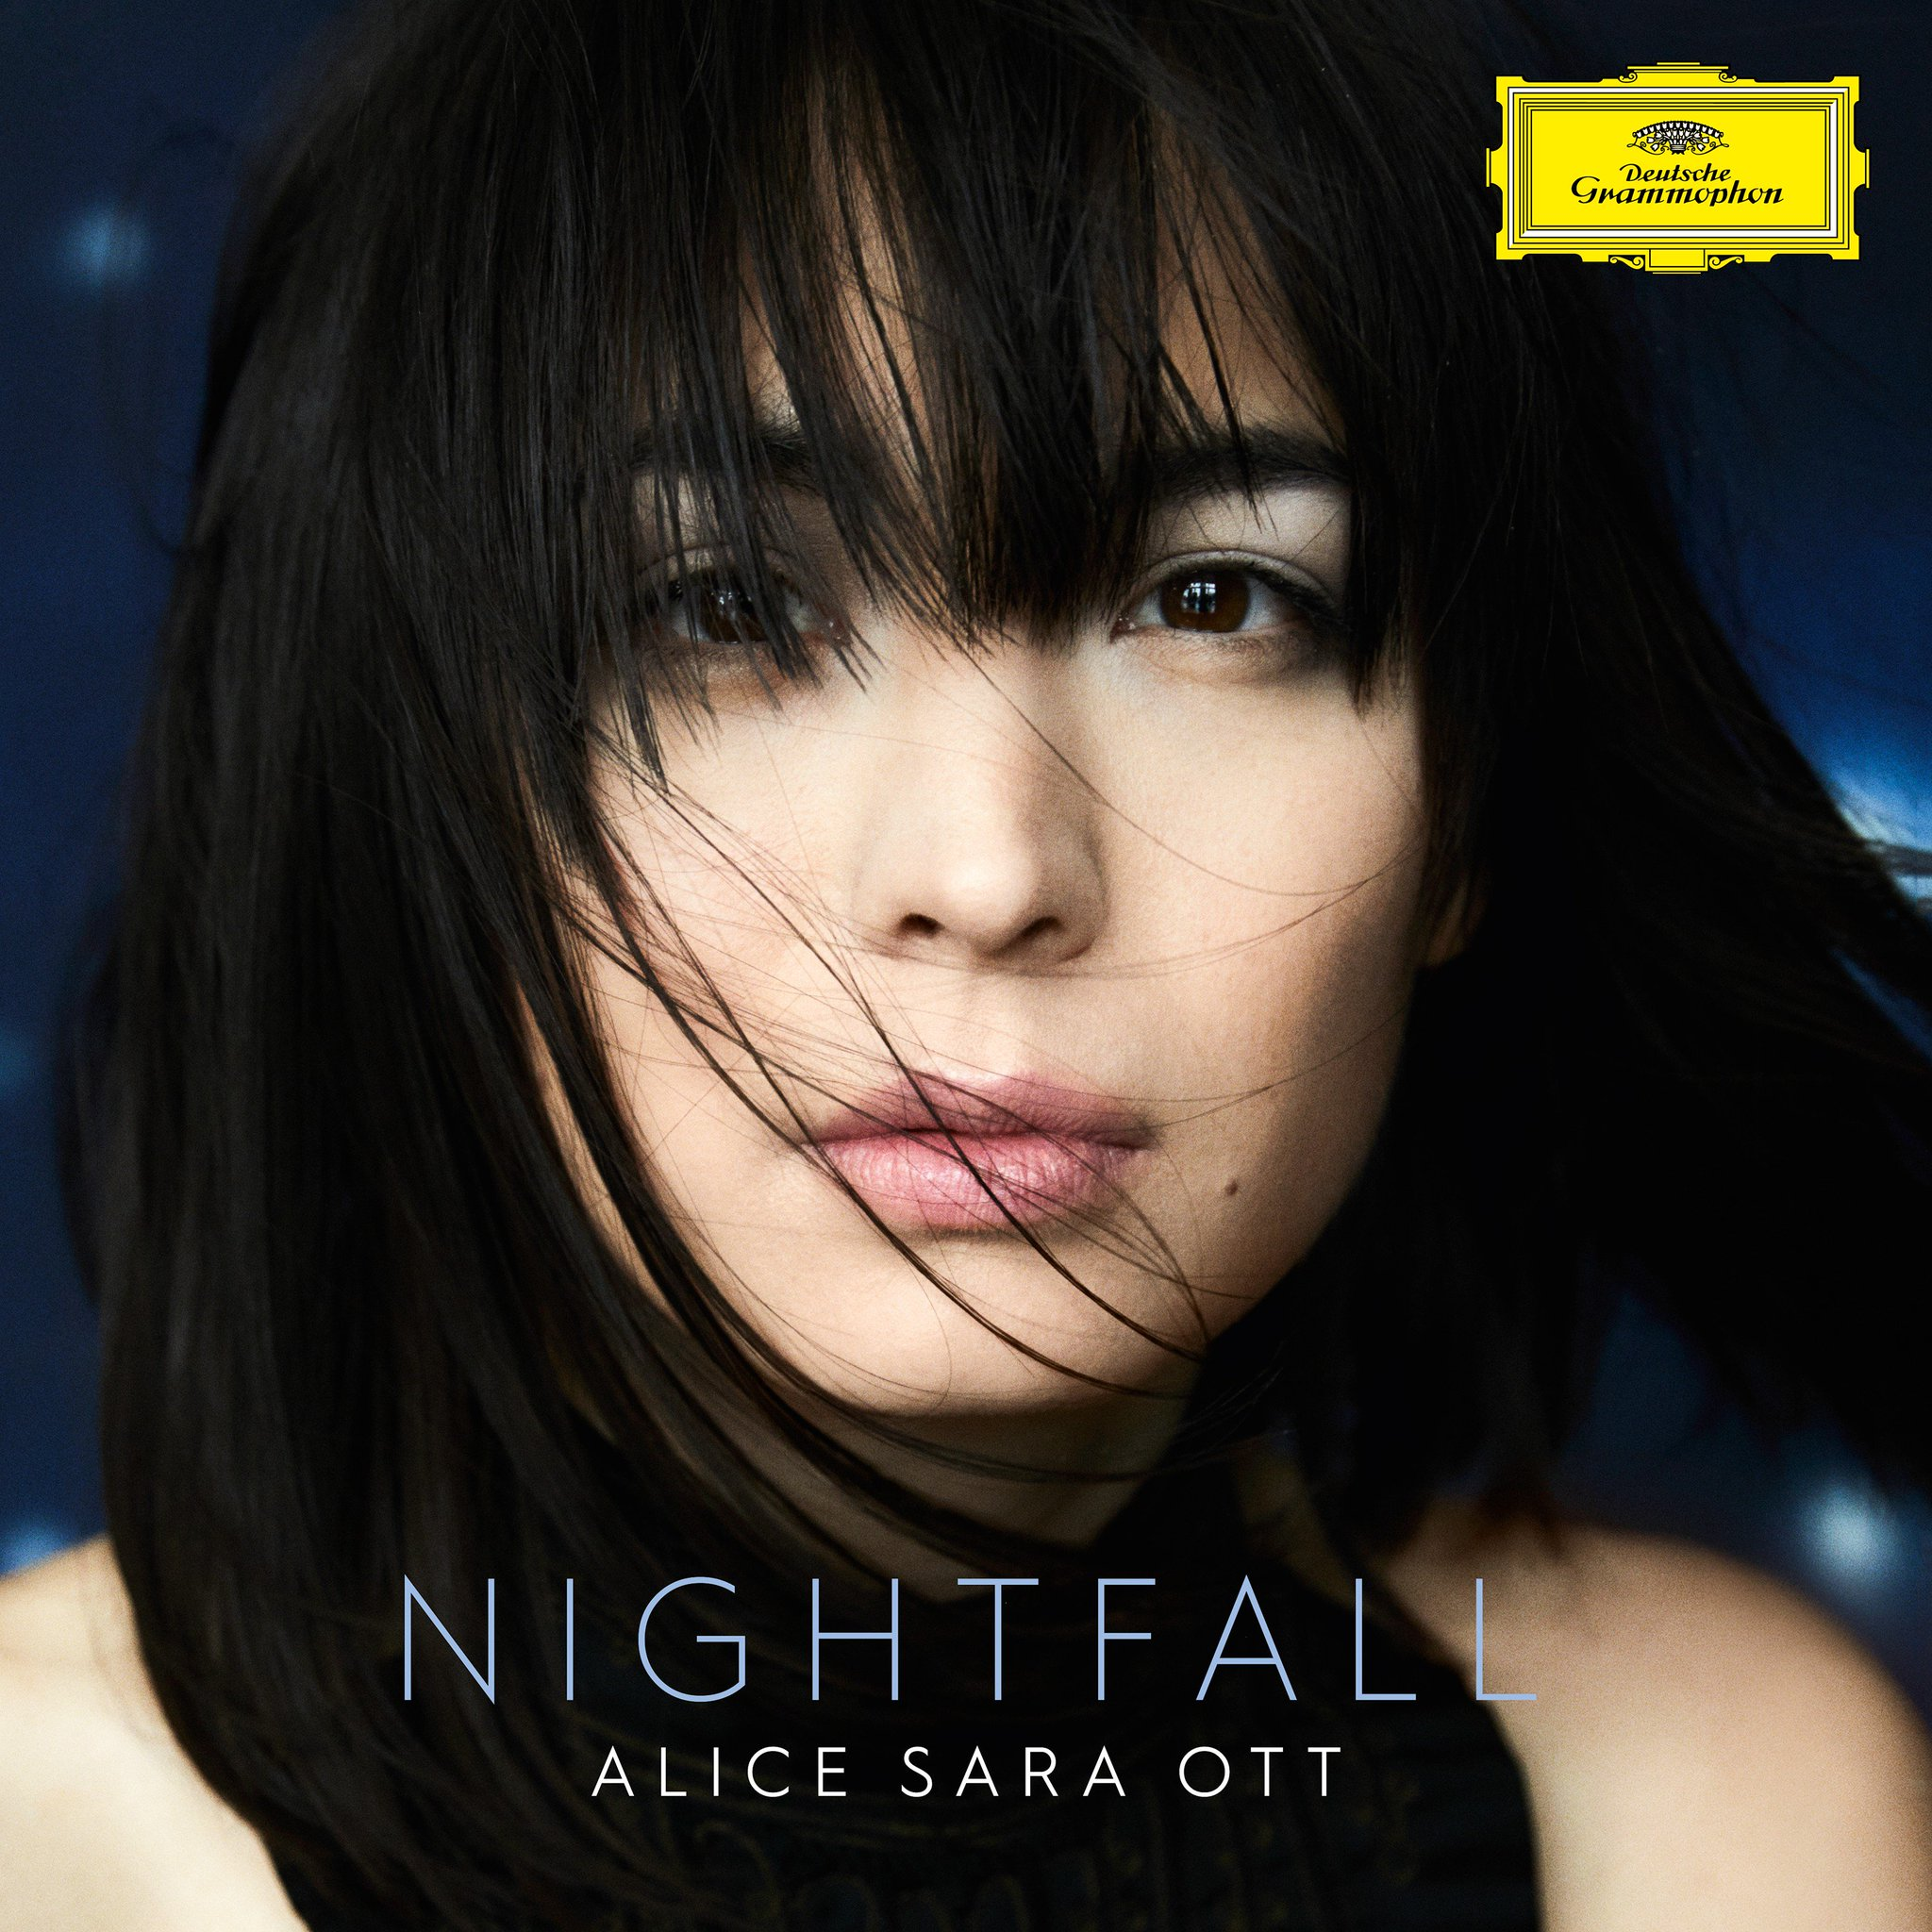 Reloaded twaddle – RT @DGclassics: @AliceSaraOtt  presents 'Nightfall', where she explores the tran...